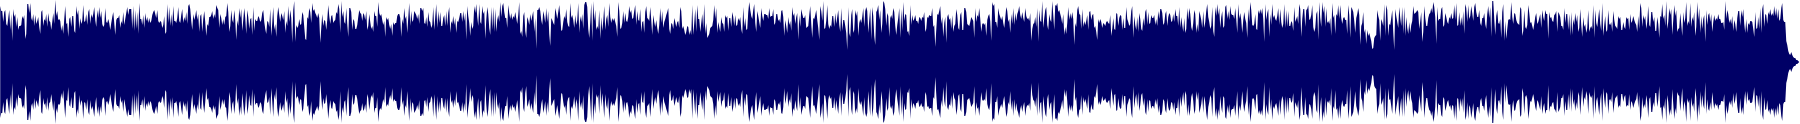 waveform of track #70889